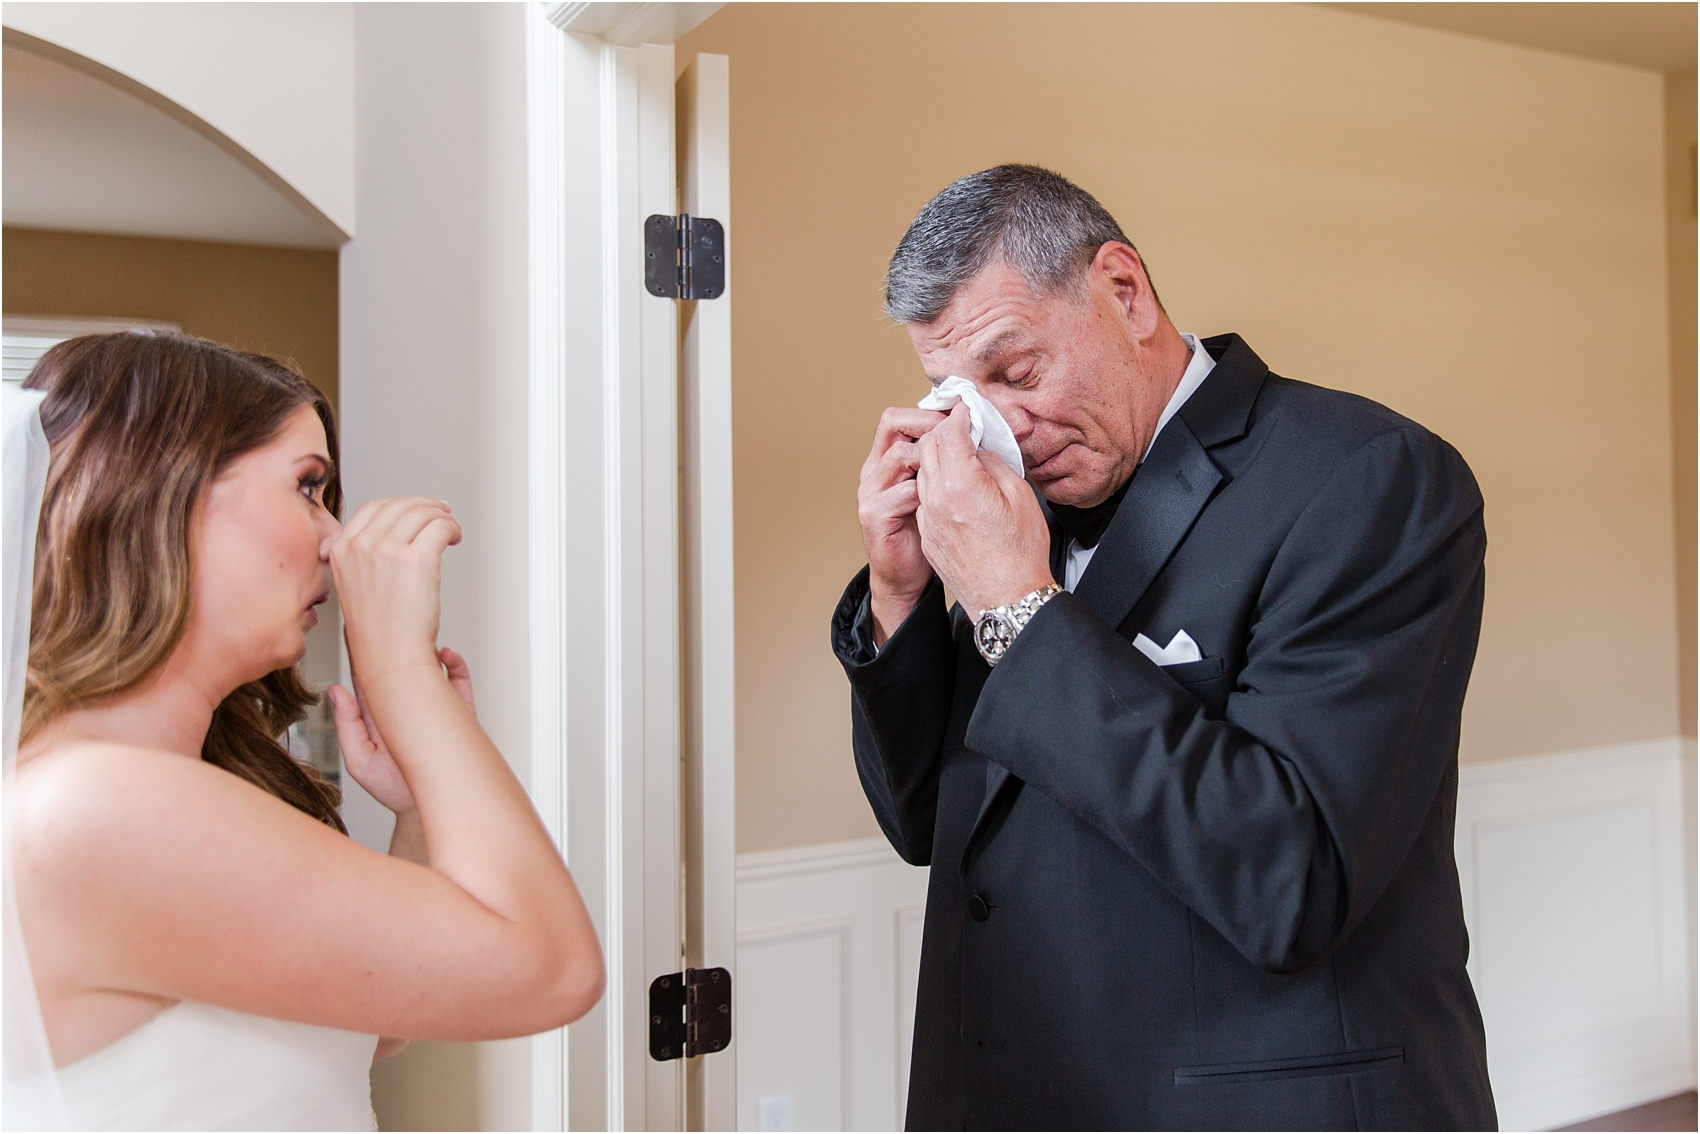 father-and-bride-share-emotional-first-look-on-wedding-day-photos-in-detroit-michigan-by-courtney-carolyn-photography_0019.jpg